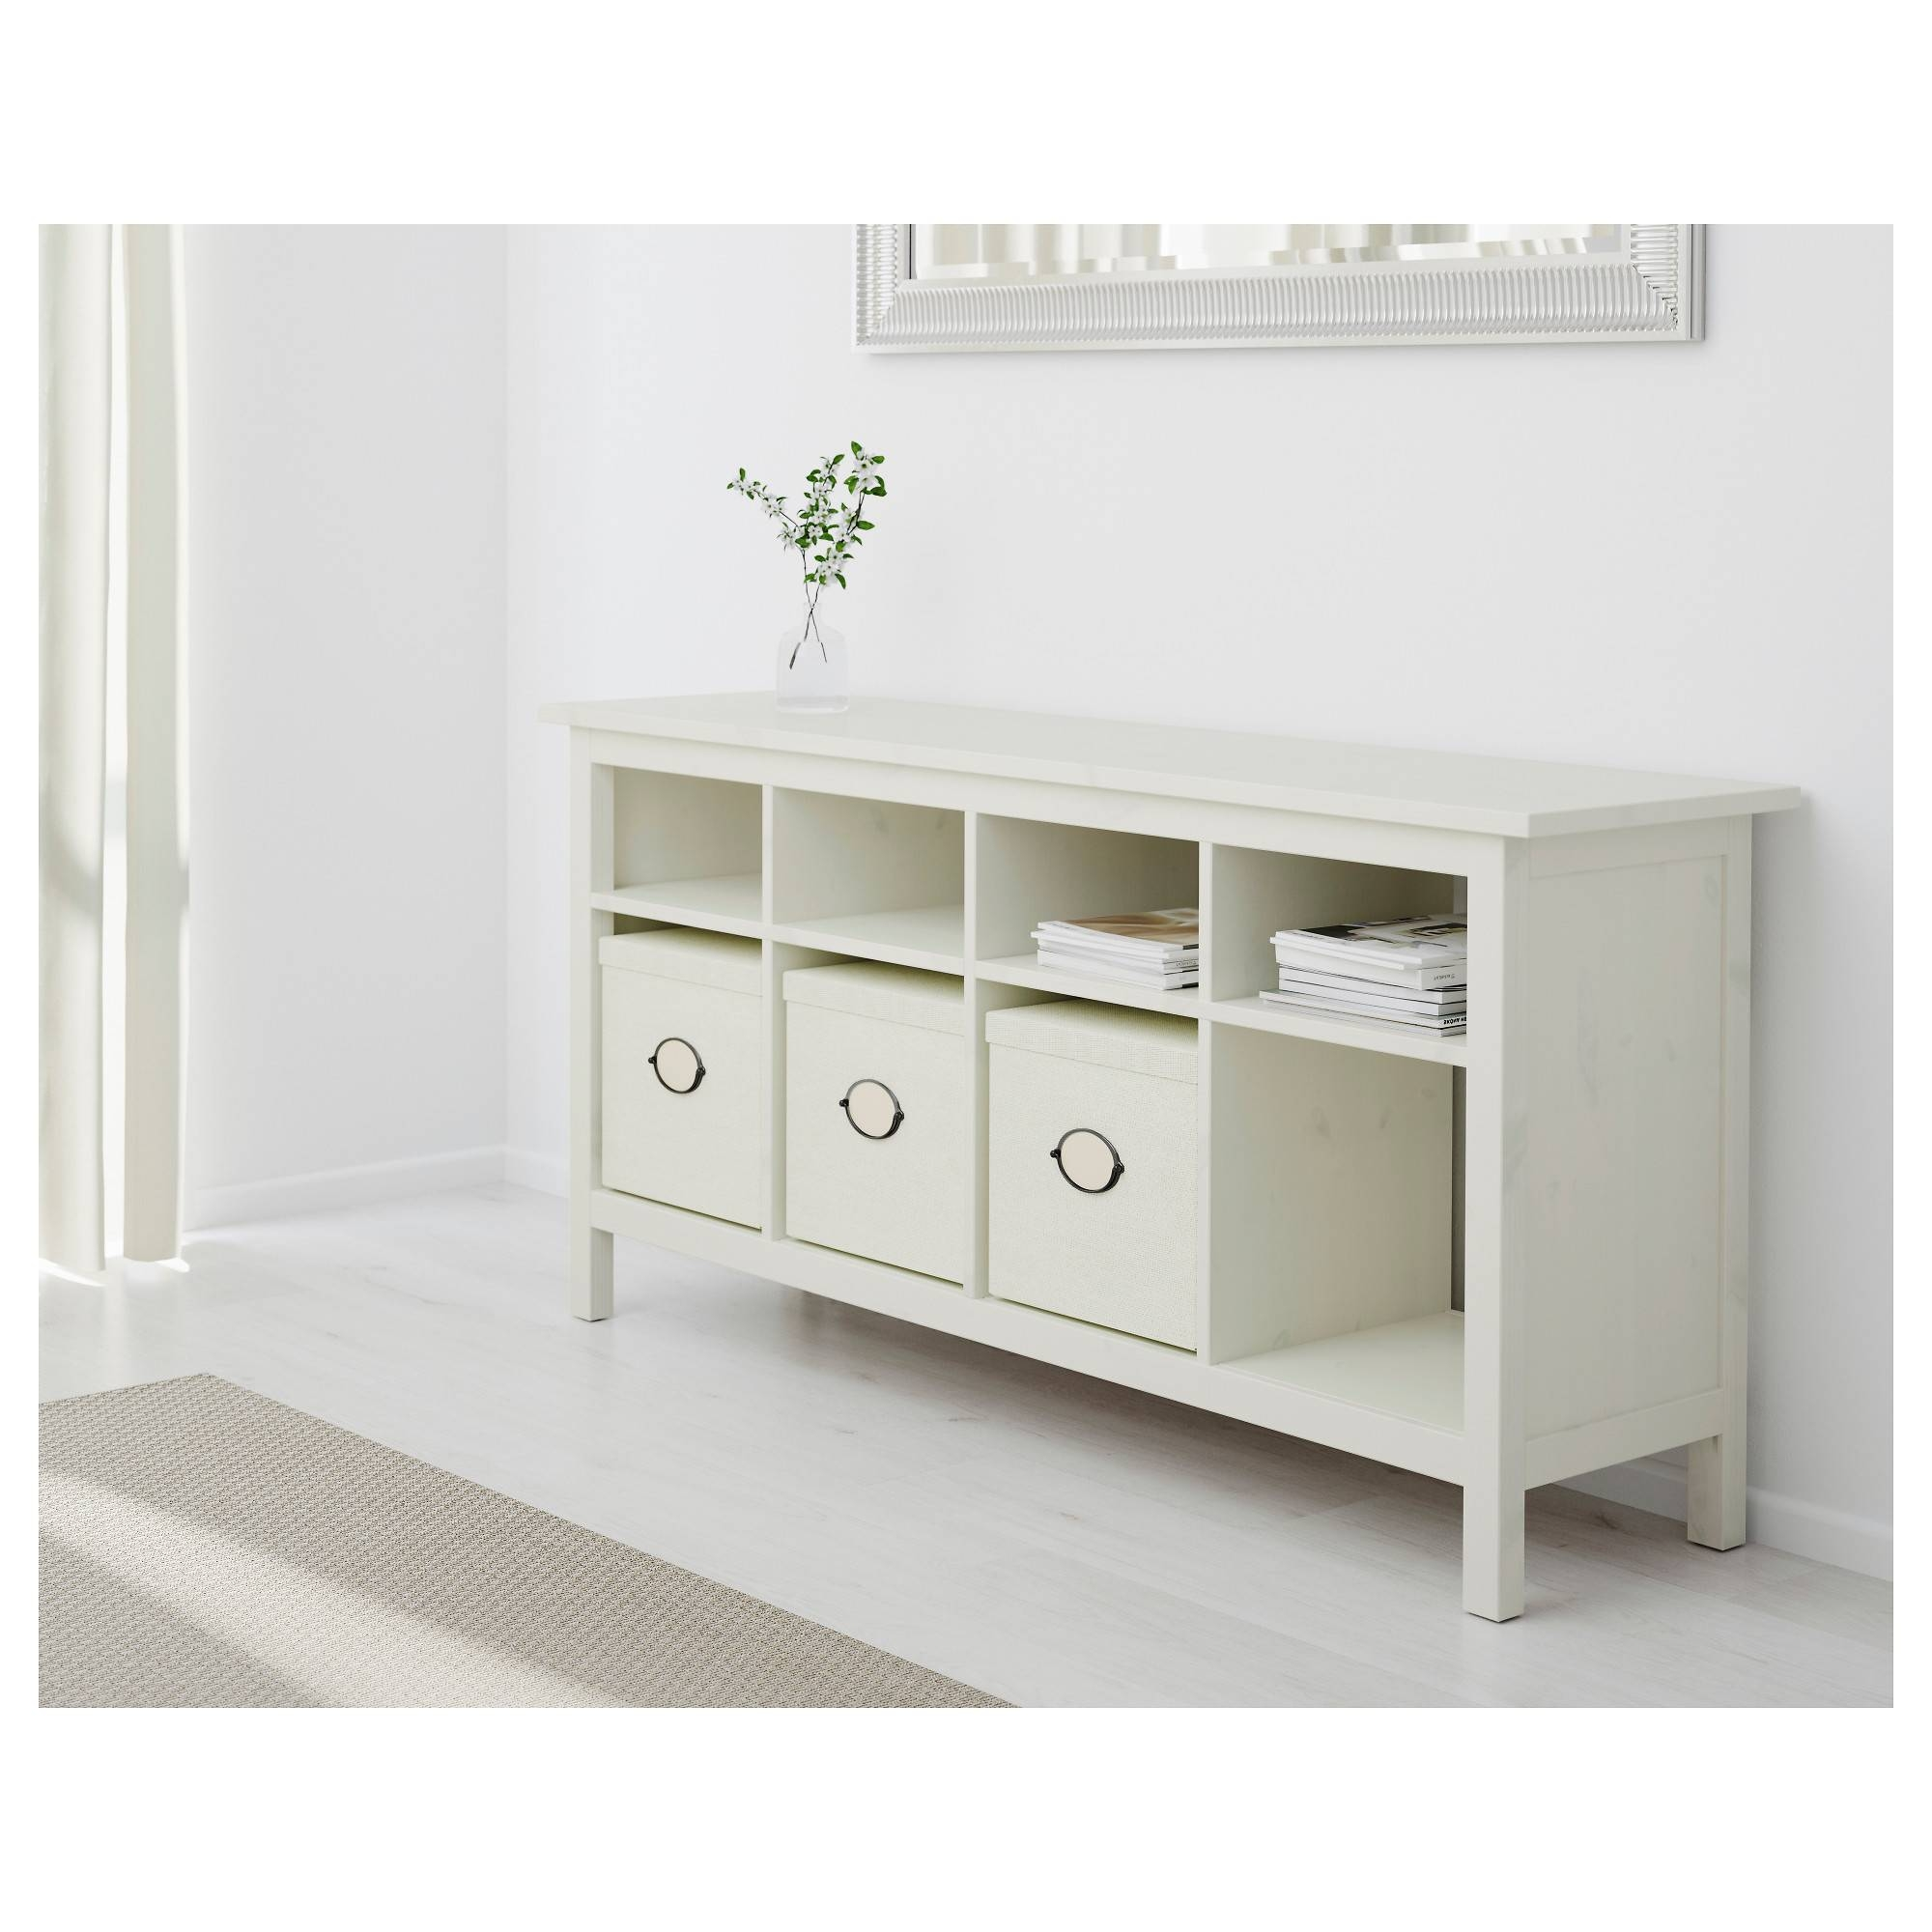 Hemnes Console Table White Stain 157X40 Cm – Ikea Intended For Sideboards And Tables (View 6 of 15)